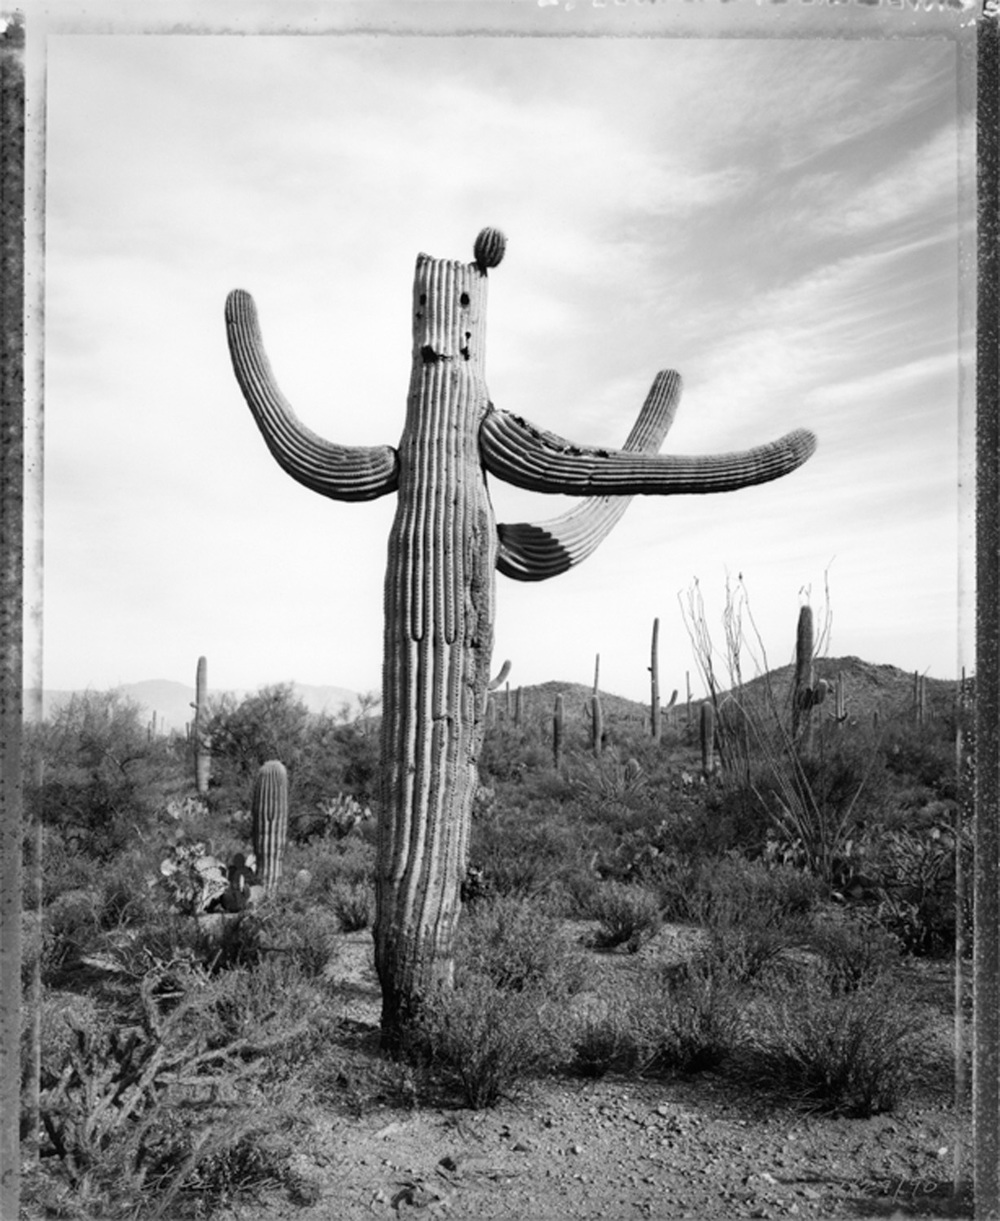 Cactus carved by gunfire, Tucson, 1990